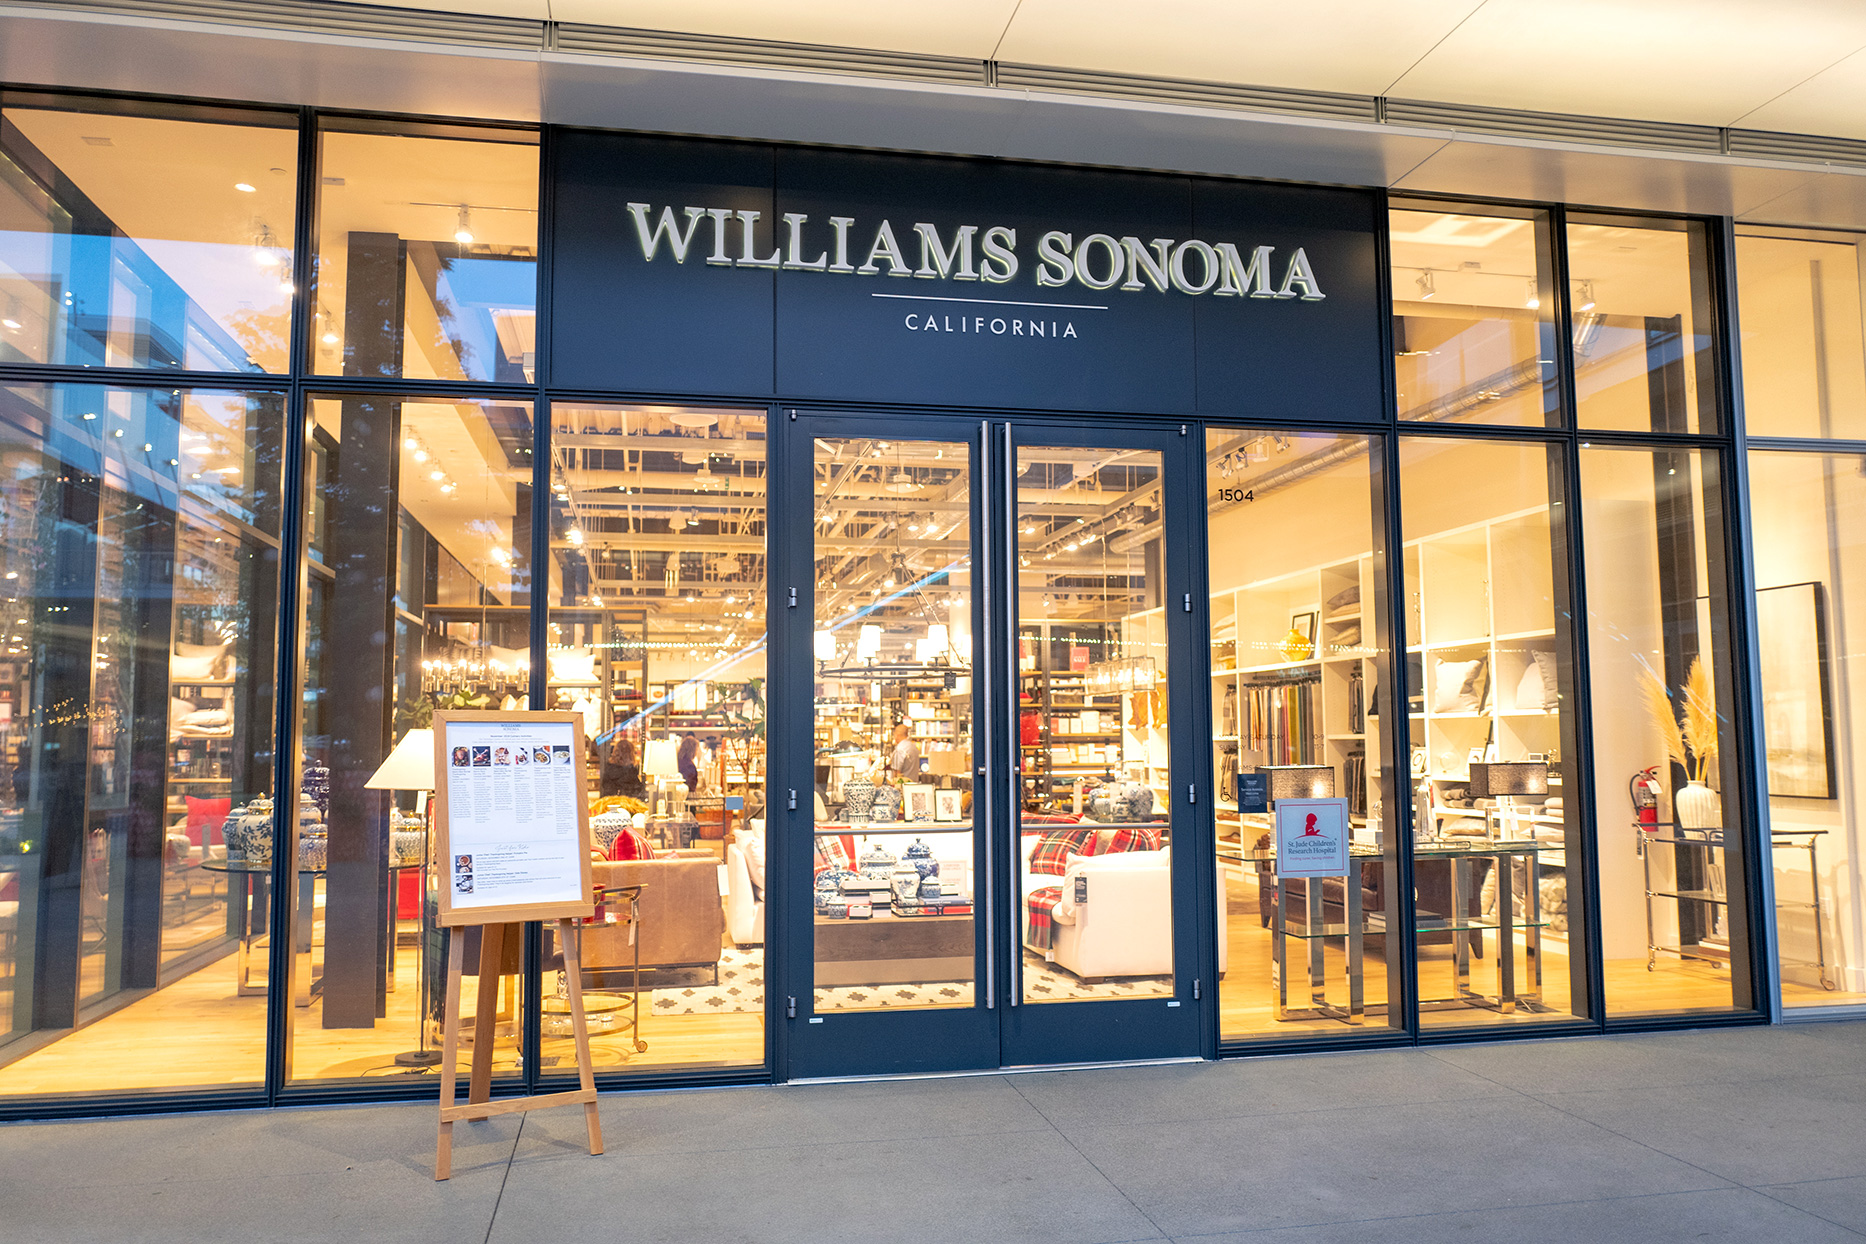 williams sonoma storefront